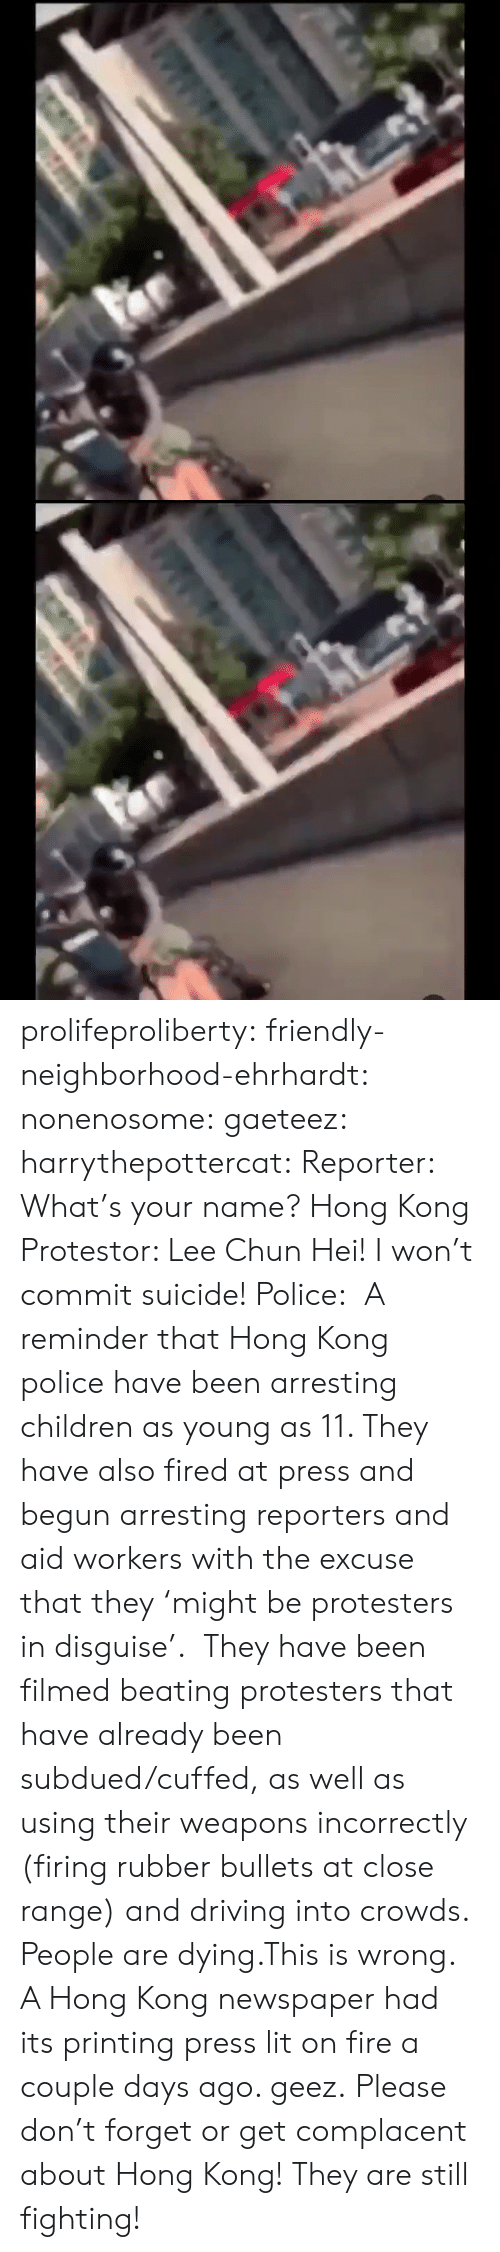 your name: के.  ॥ल prolifeproliberty:  friendly-neighborhood-ehrhardt:  nonenosome:  gaeteez:   harrythepottercat:  Reporter: What's your name? Hong Kong Protestor: Lee Chun Hei! I won't commit suicide! Police:    A reminder that Hong Kong police have been arresting children as young as 11. They have also fired at press and begun arresting reporters and aid workers with the excuse that they 'might be protesters in disguise'.  They have been filmed beating protesters that have already been subdued/cuffed, as well as using their weapons incorrectly (firing rubber bullets at close range) and driving into crowds.  People are dying.This is wrong.    A Hong Kong newspaper had its printing press lit on fire a couple days ago.   geez.   Please don't forget or get complacent about Hong Kong! They are still fighting!